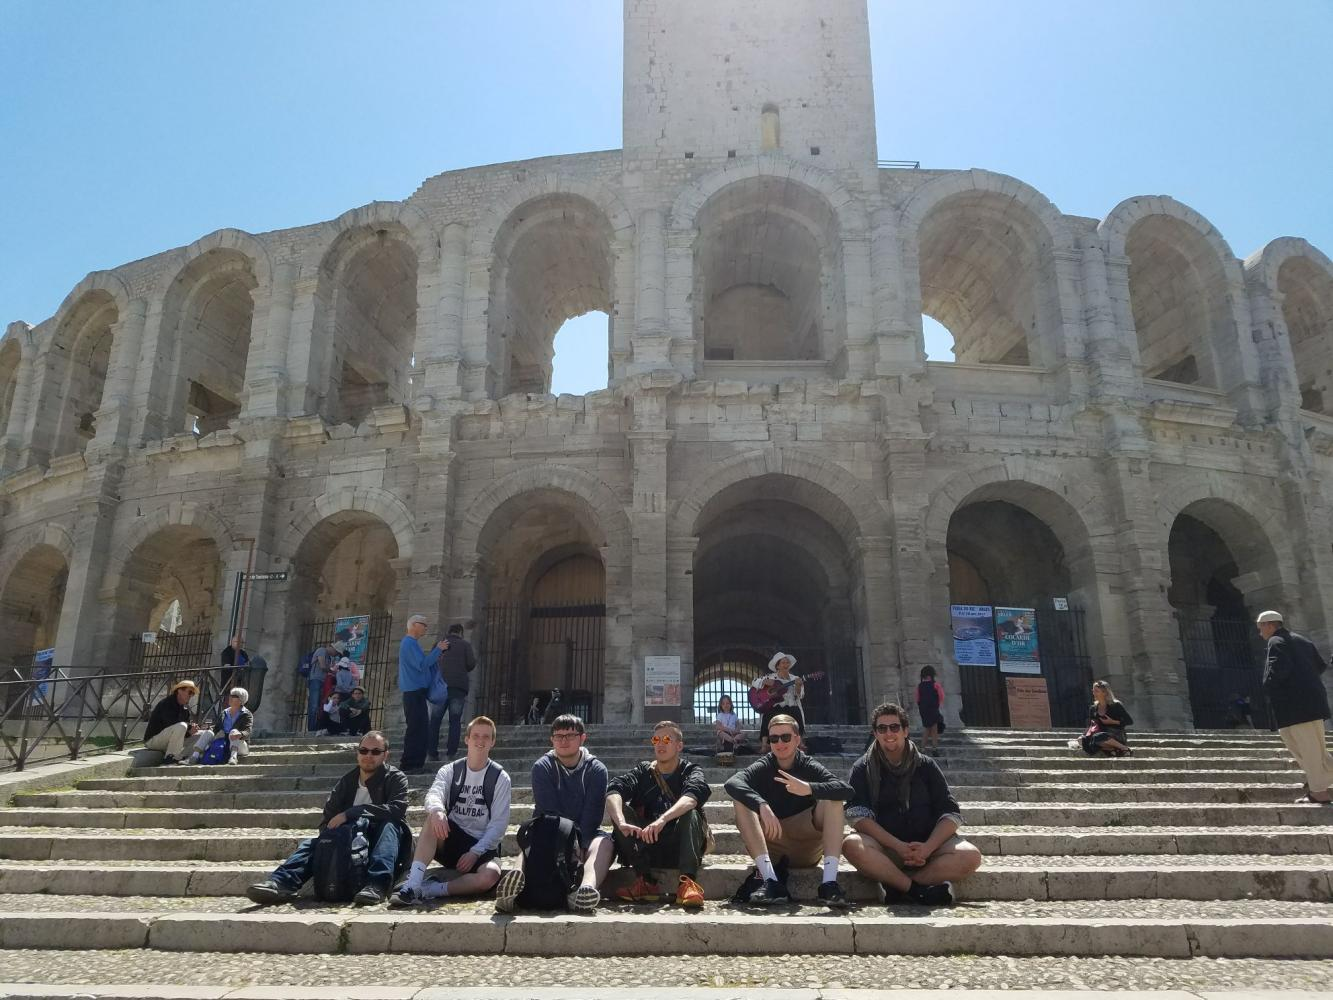 Several members of the Caravan - including (left to right) Ray Harris, Nico Della Fave, Colin Sage, Nick Dimas, Conor Langs, and Robeert Pickert - enjoyed a sunny day in Nimes, France exploring the ruins of a Roman amphitheater.